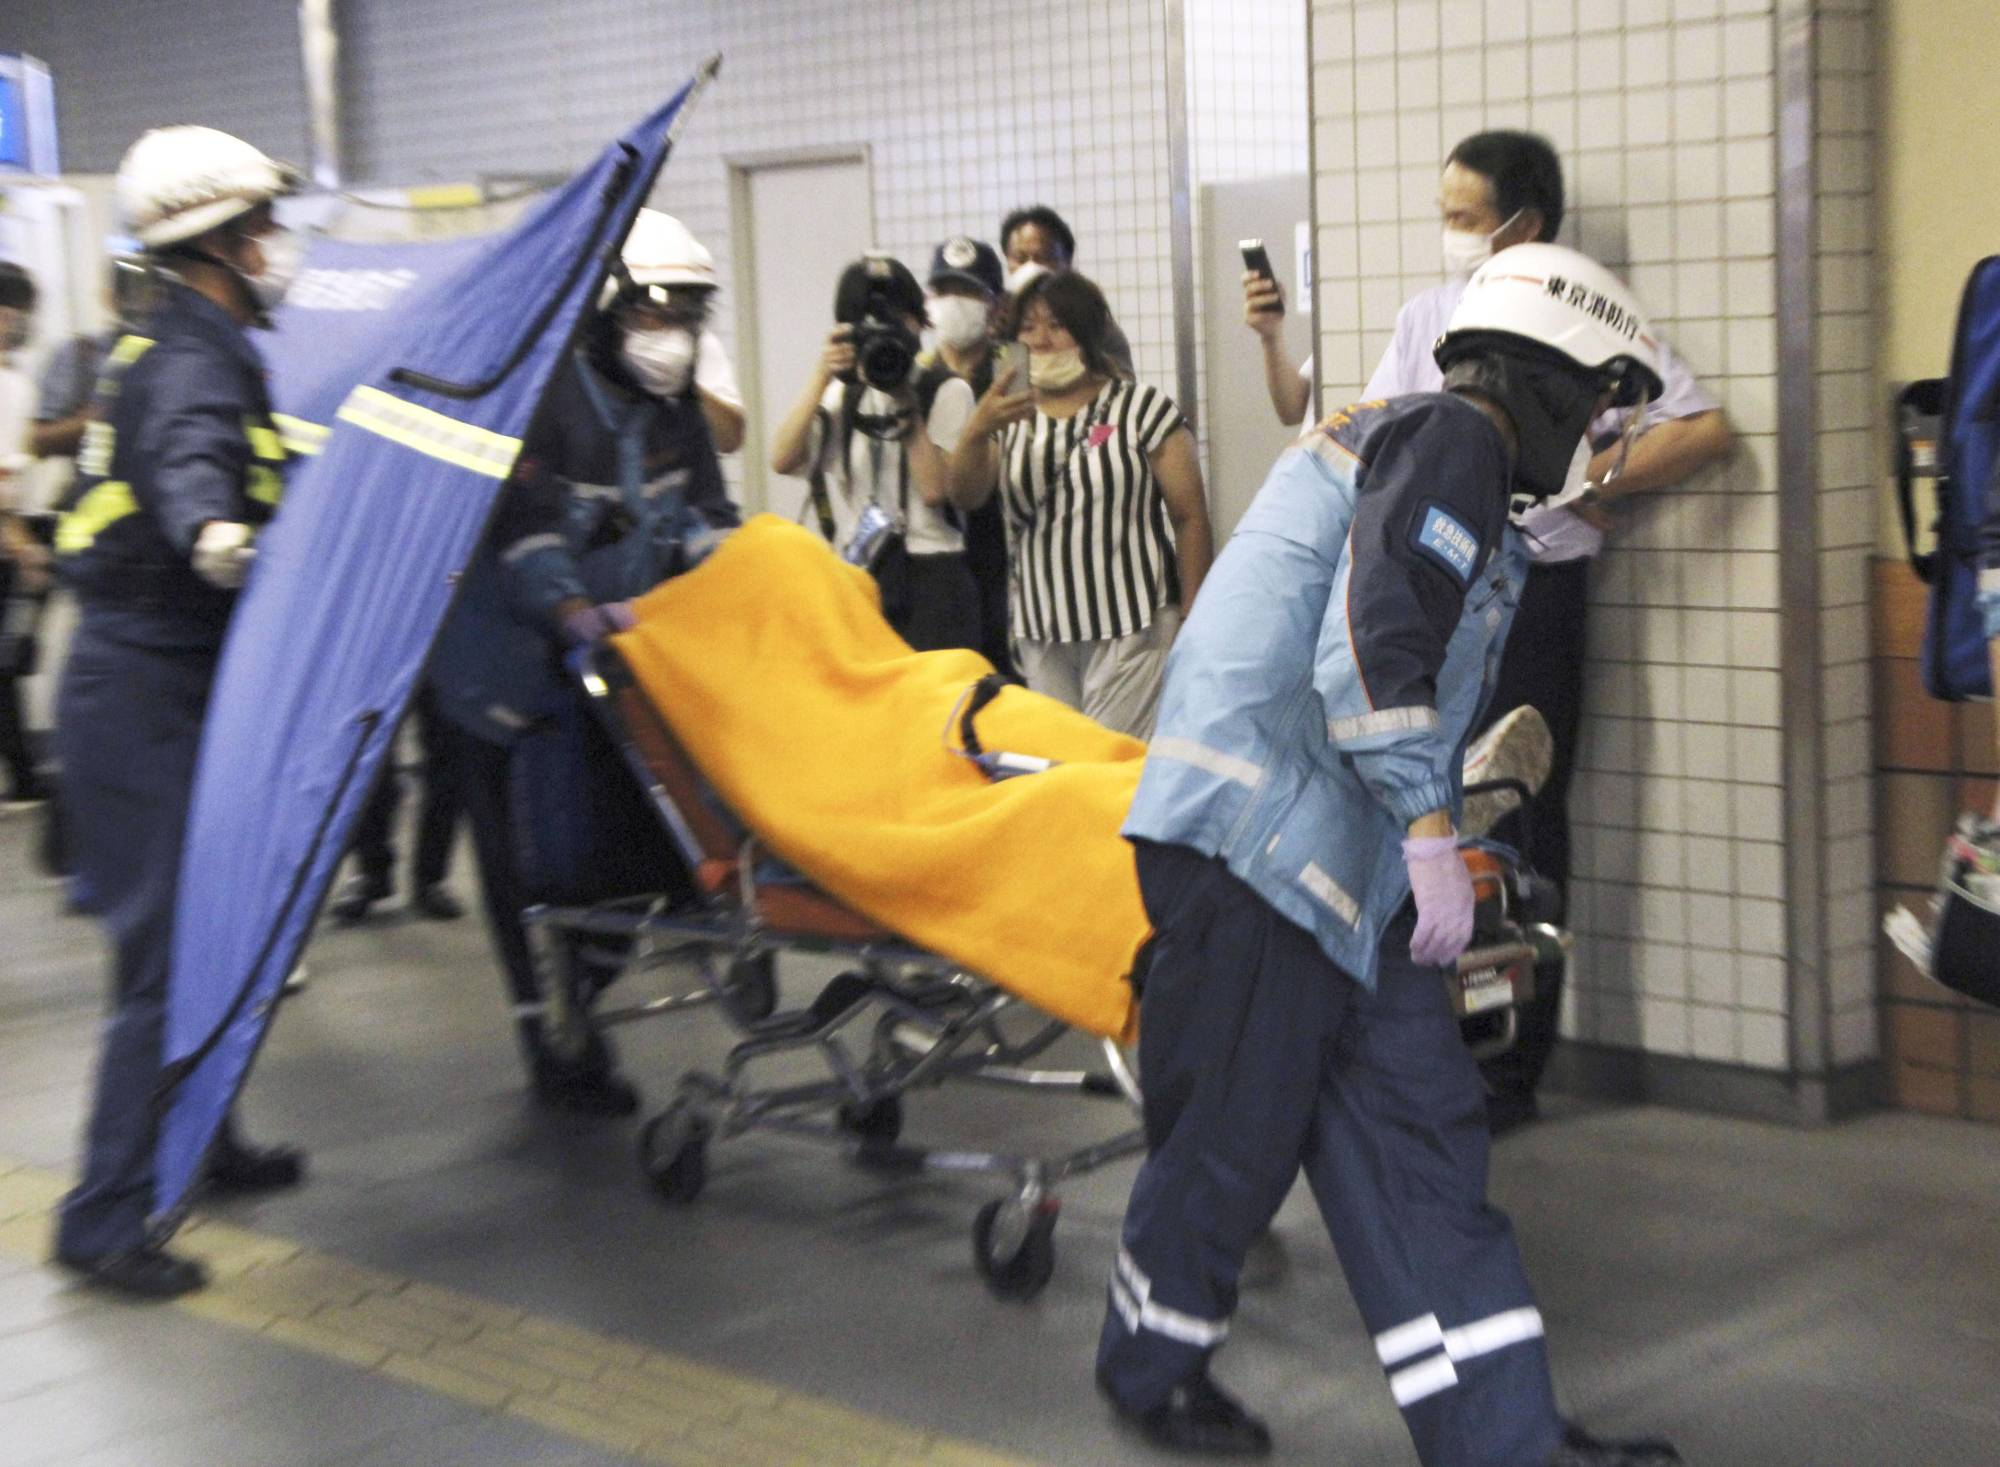 Paramedics carry an injured passenger from an Odakyu Electric Railway train on Friday in Tokyo, after a man went on a stabbing rampage inside the train. | KYODO